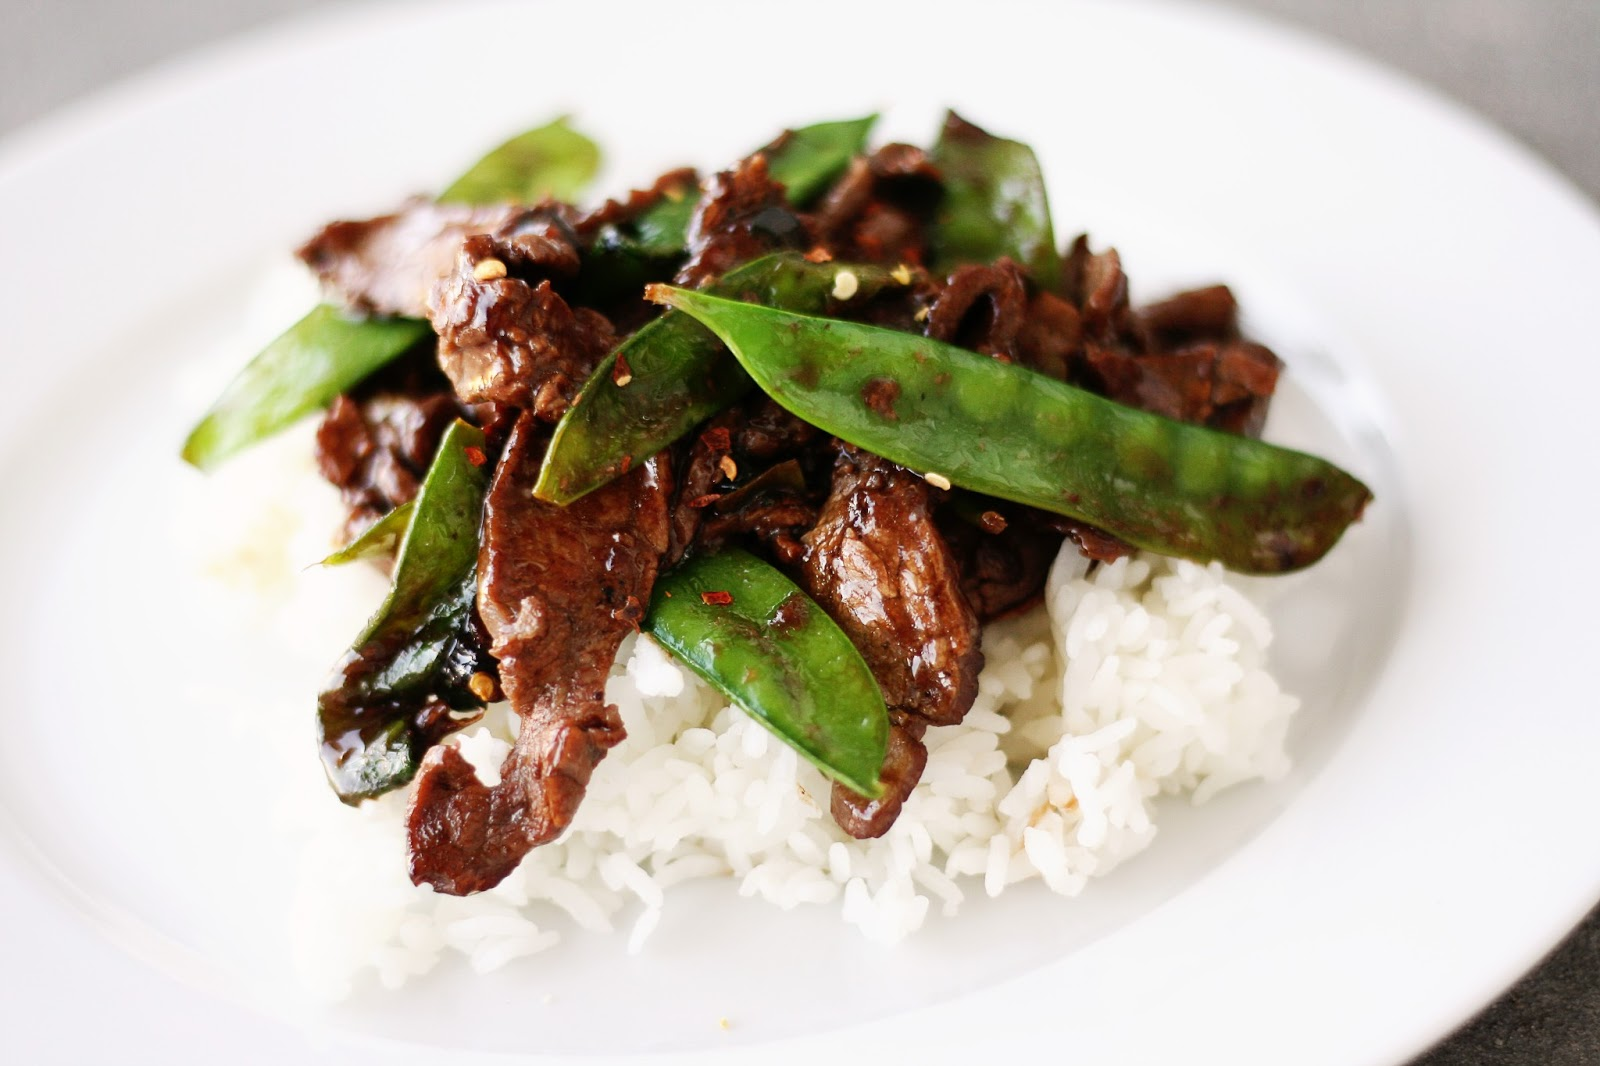 Naughty Carbs: Asian Beef with Snow Peas (Low Carb/Low Fat)